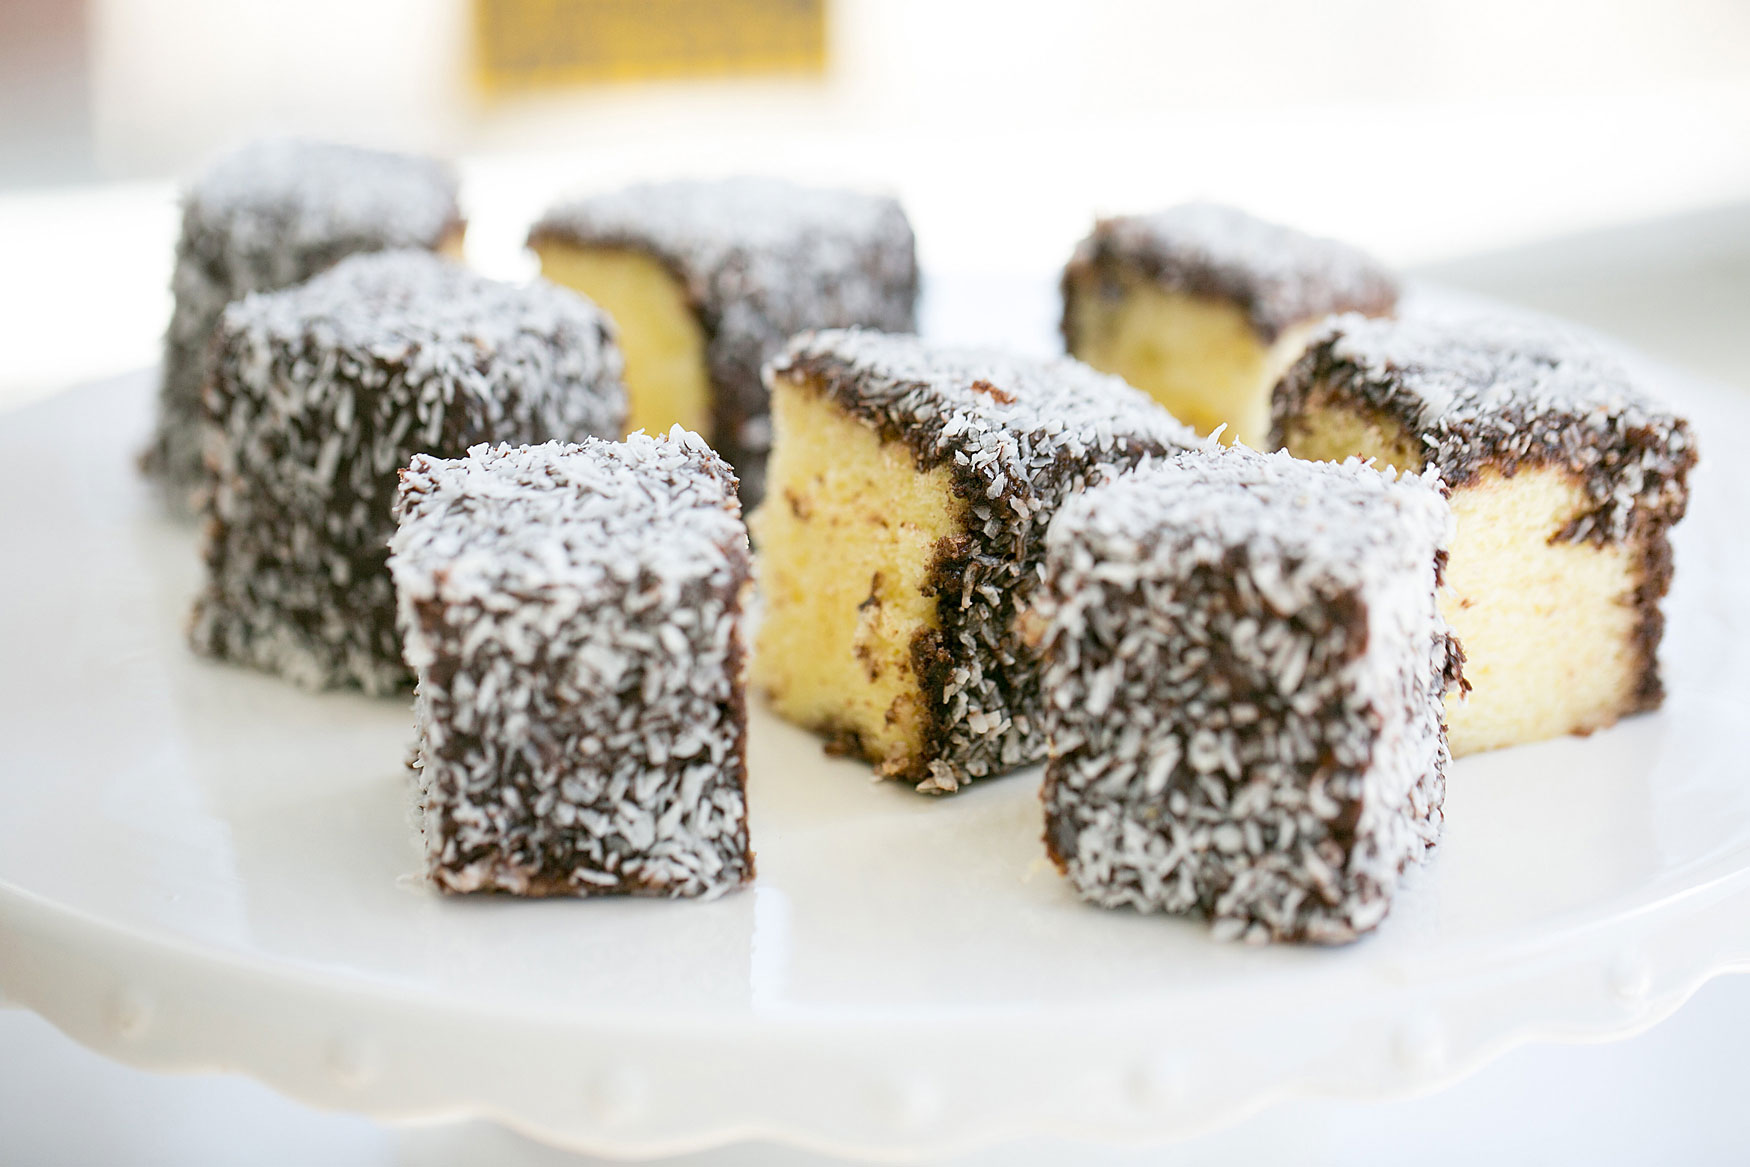 Australian lamington cakes (moist white sponge cake dipped in chocolate and coconut)